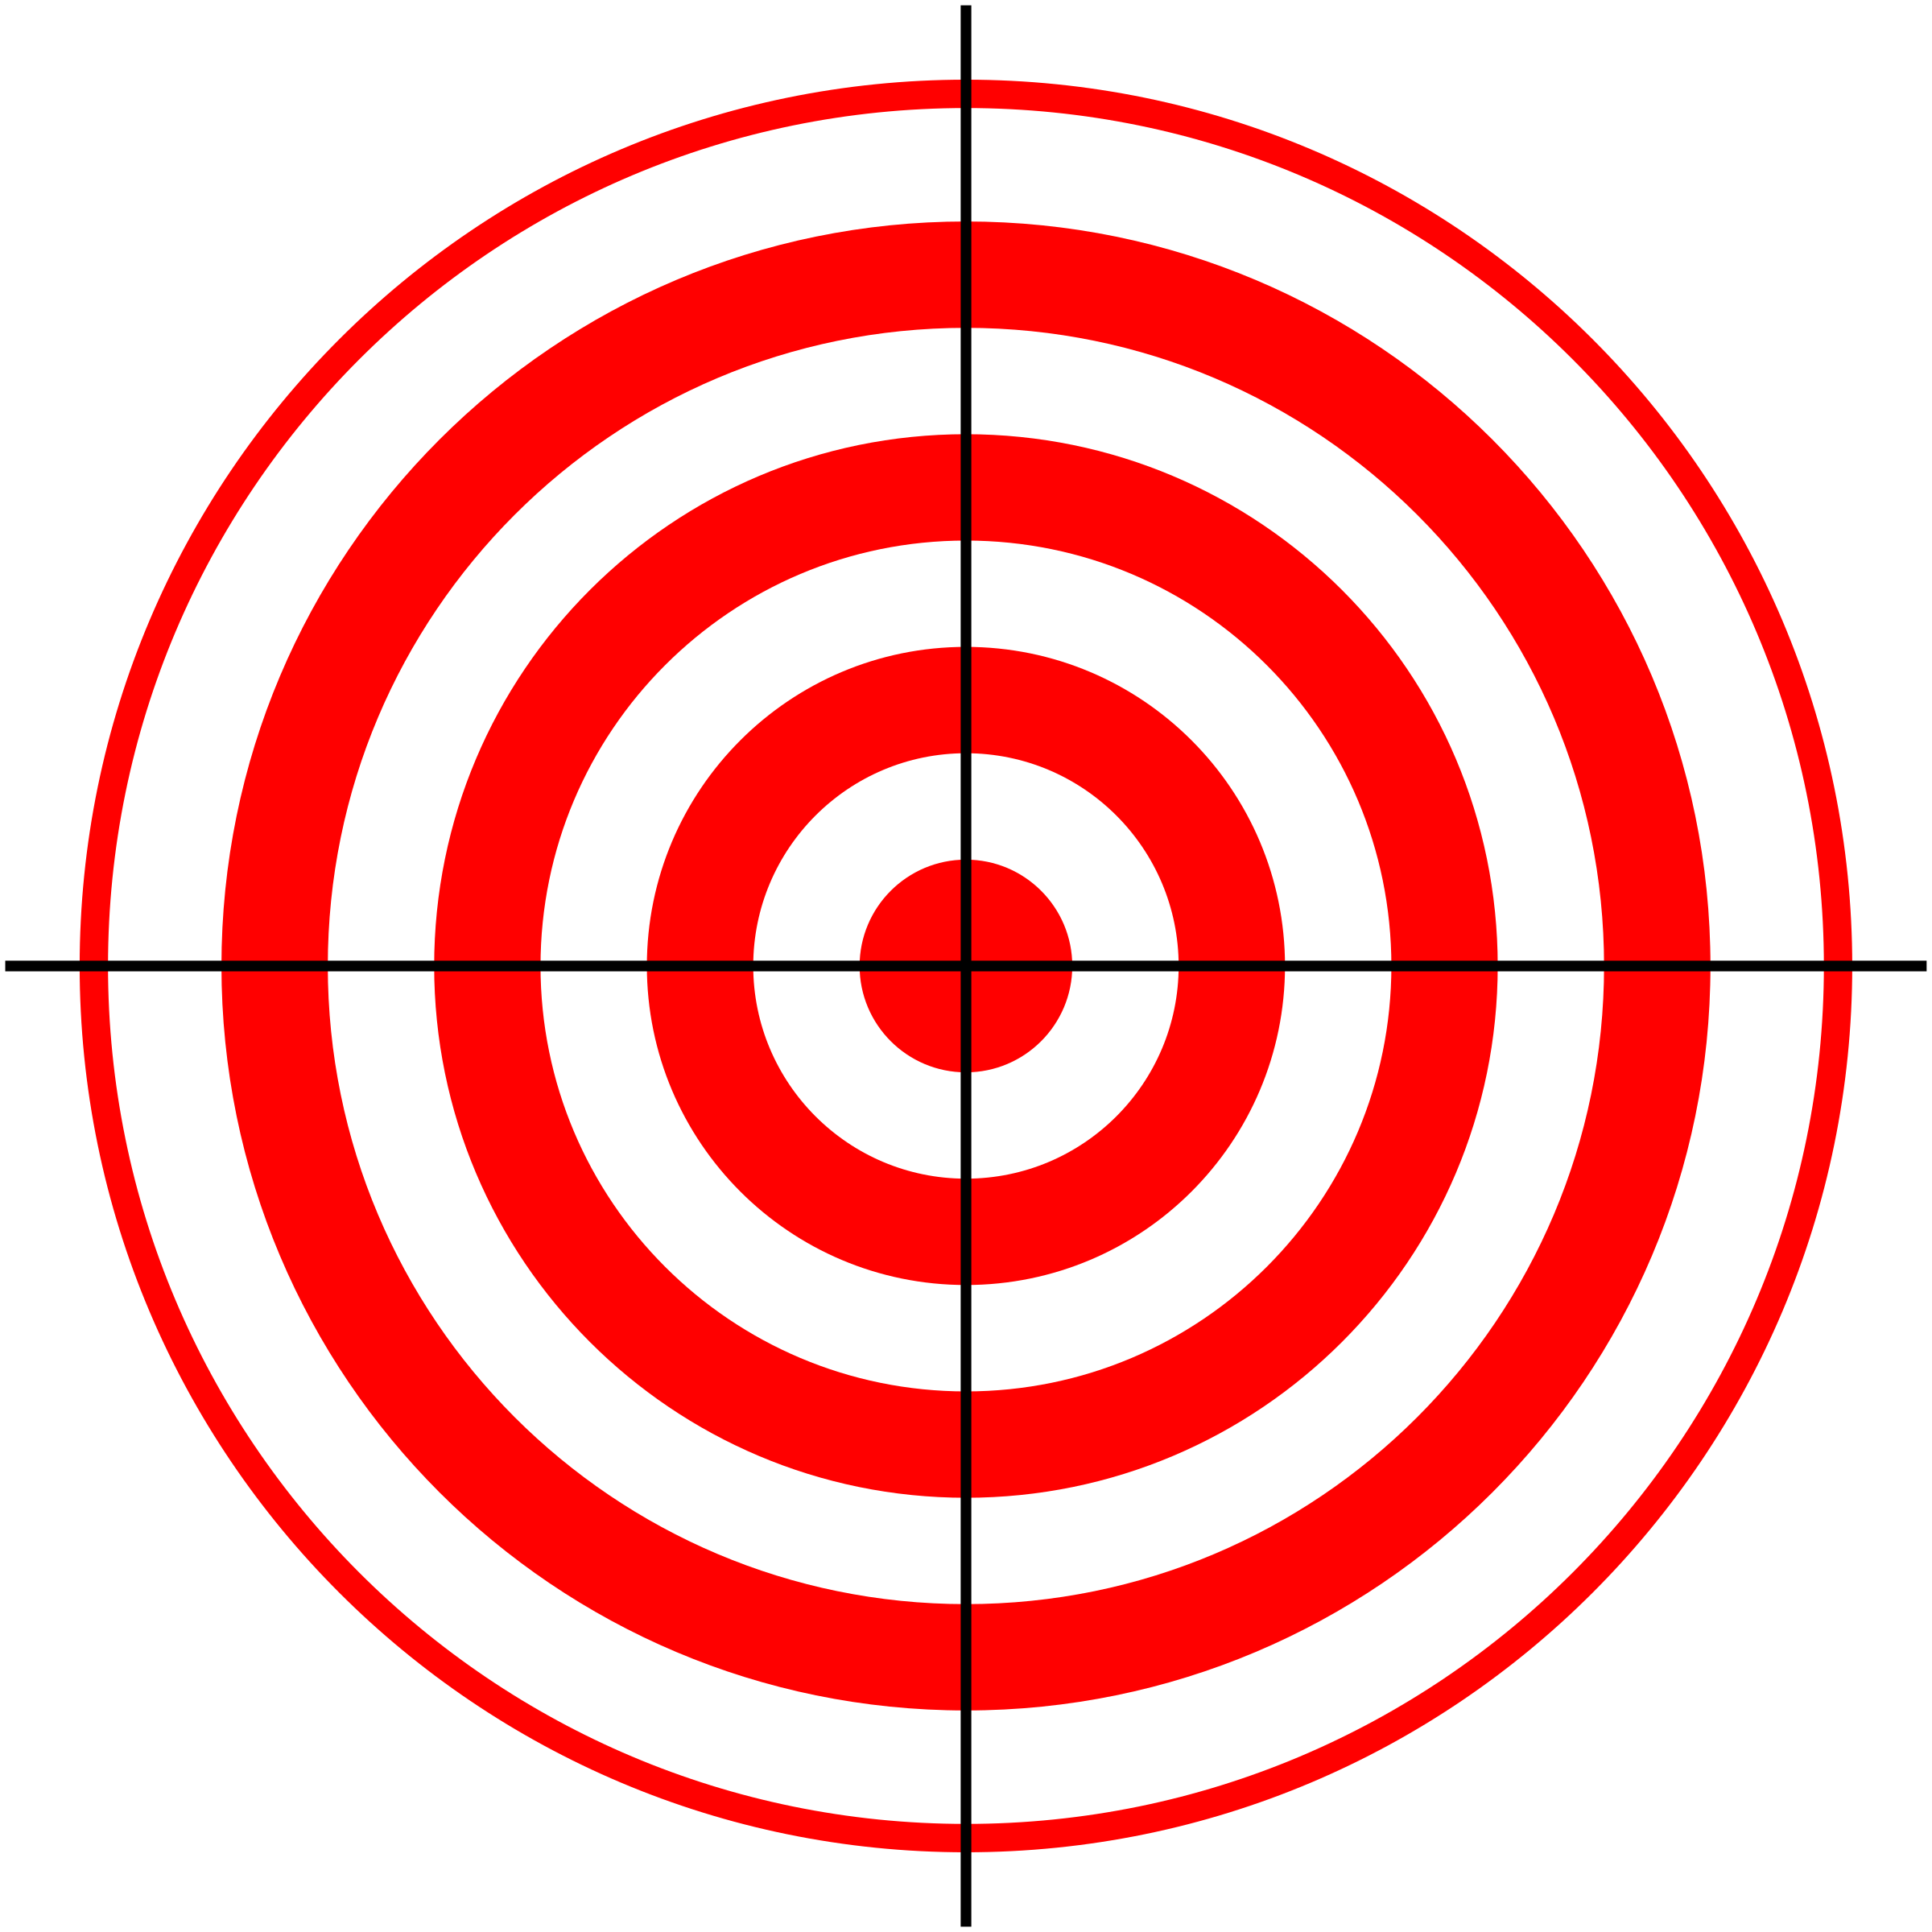 Target Png Hd PNG Image